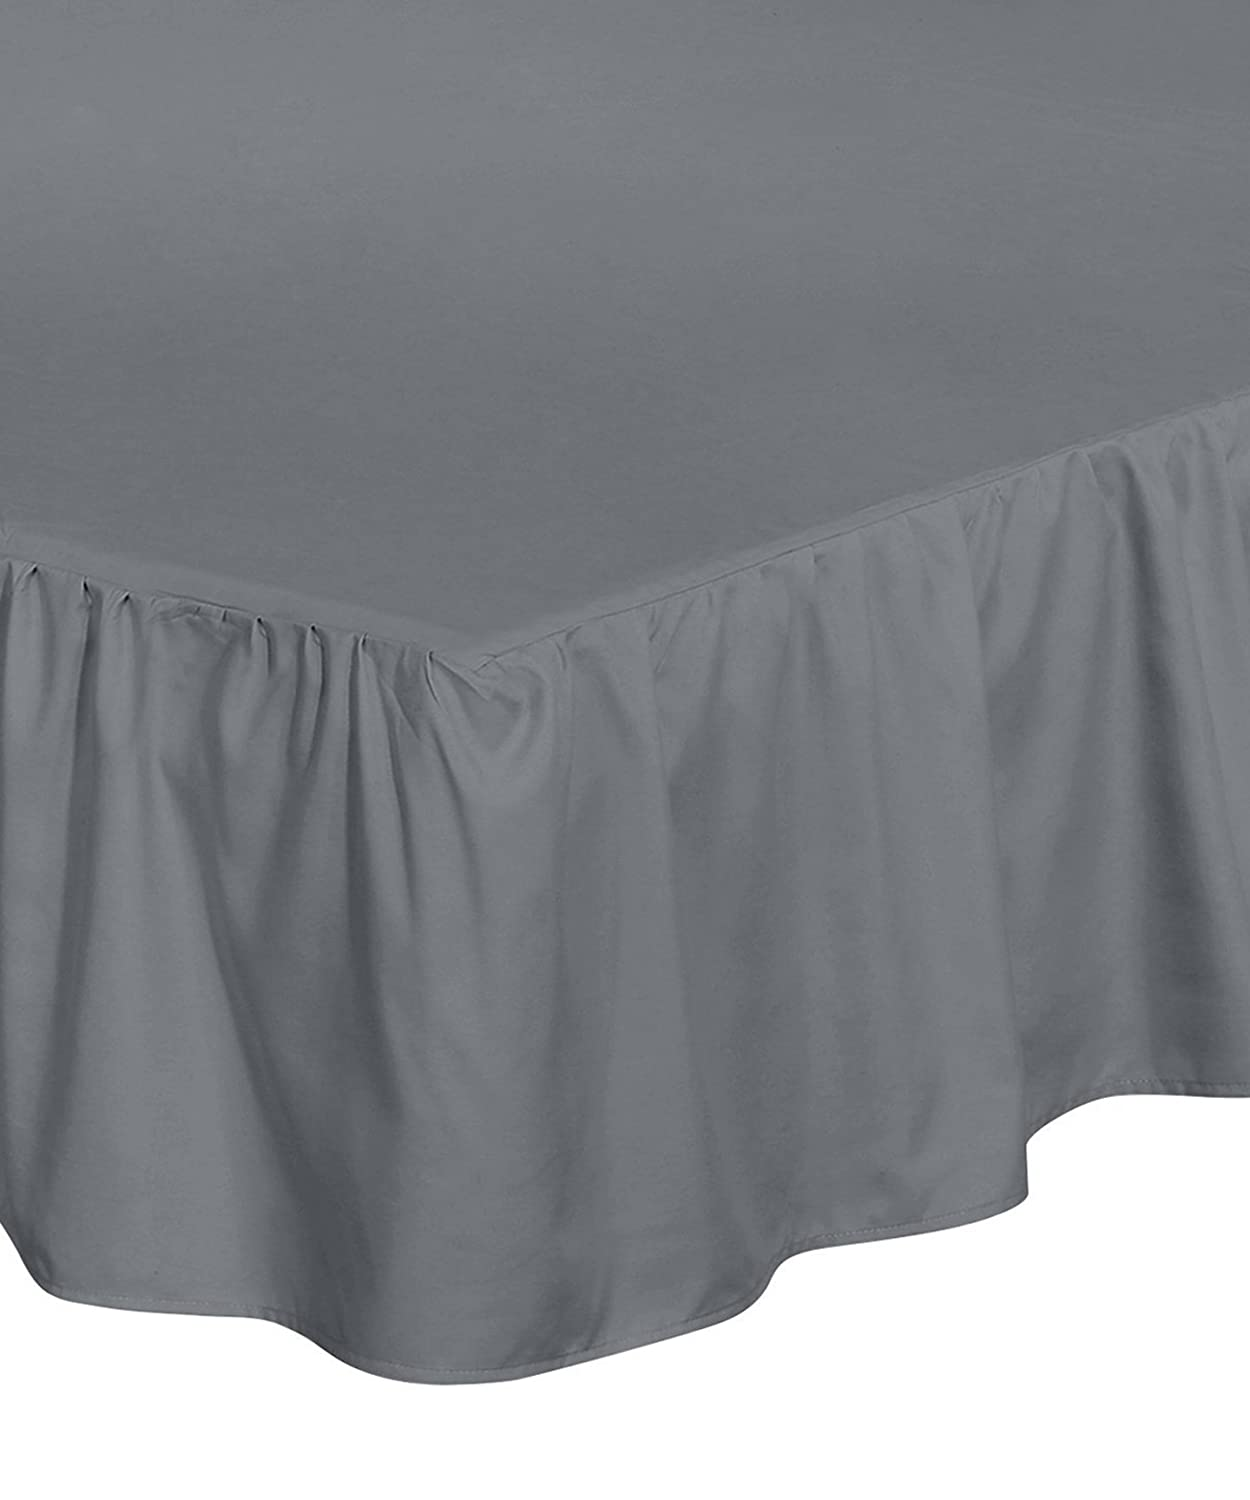 Bed Ruffle Skirt (Full, Black) Brushed Microfiber Bed Wrap with Platform - Easy Fit Gathered Style 3 Sided Coverage by Utopia Bedding